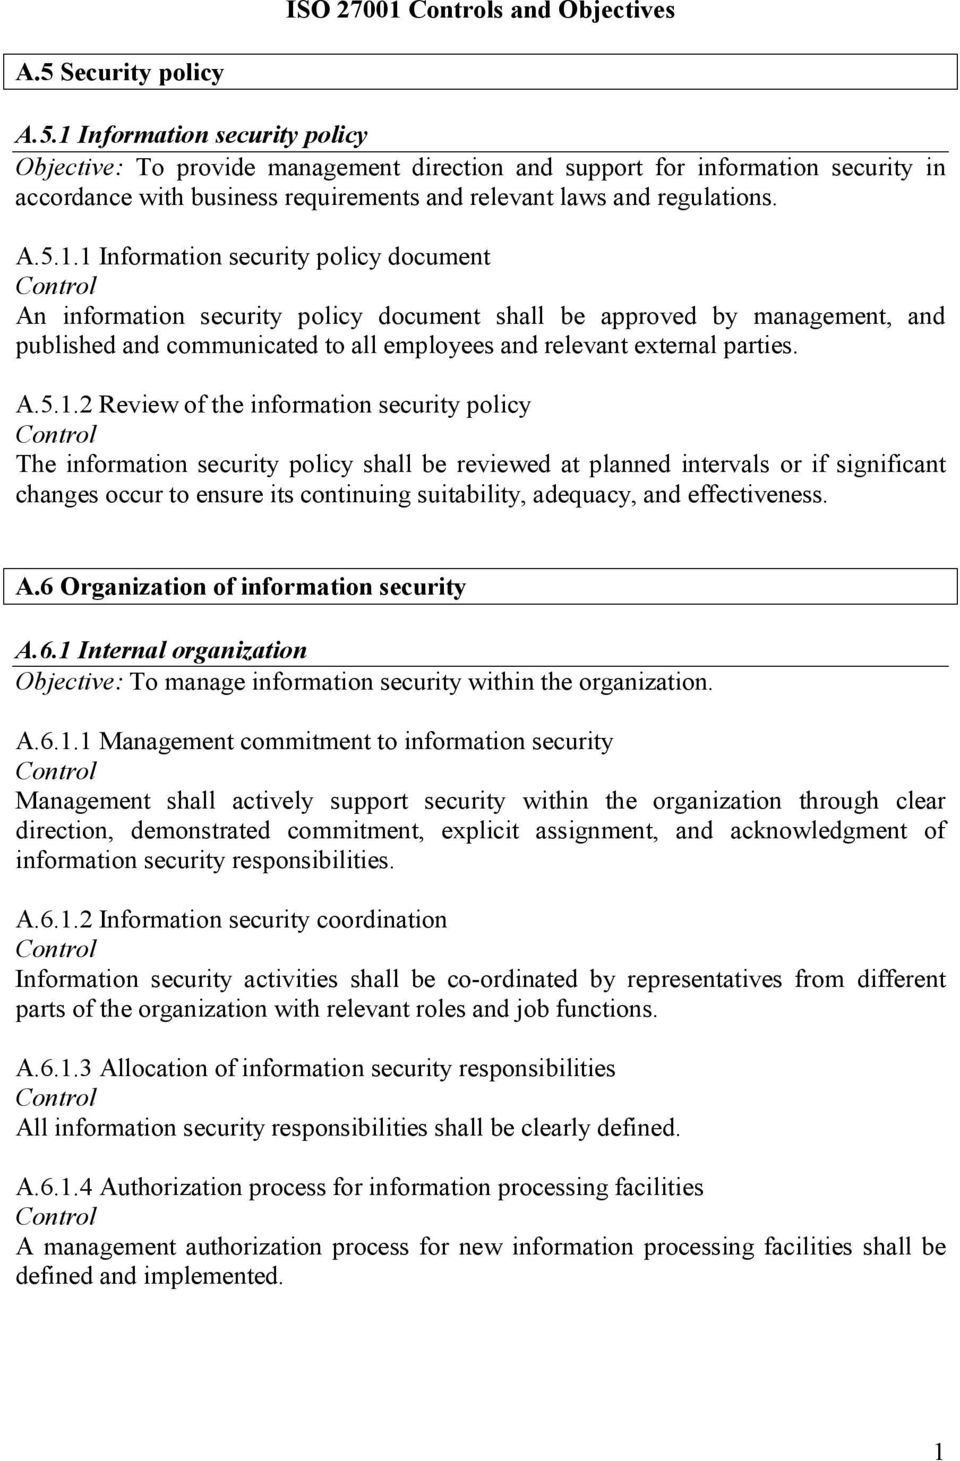 1 Information security policy Objective: To provide management direction and support for information security in accordance with business requirements and relevant laws and regulations. A.5.1.1 Information security policy document An information security policy document shall be approved by management, and published and communicated to all employees and relevant external parties.